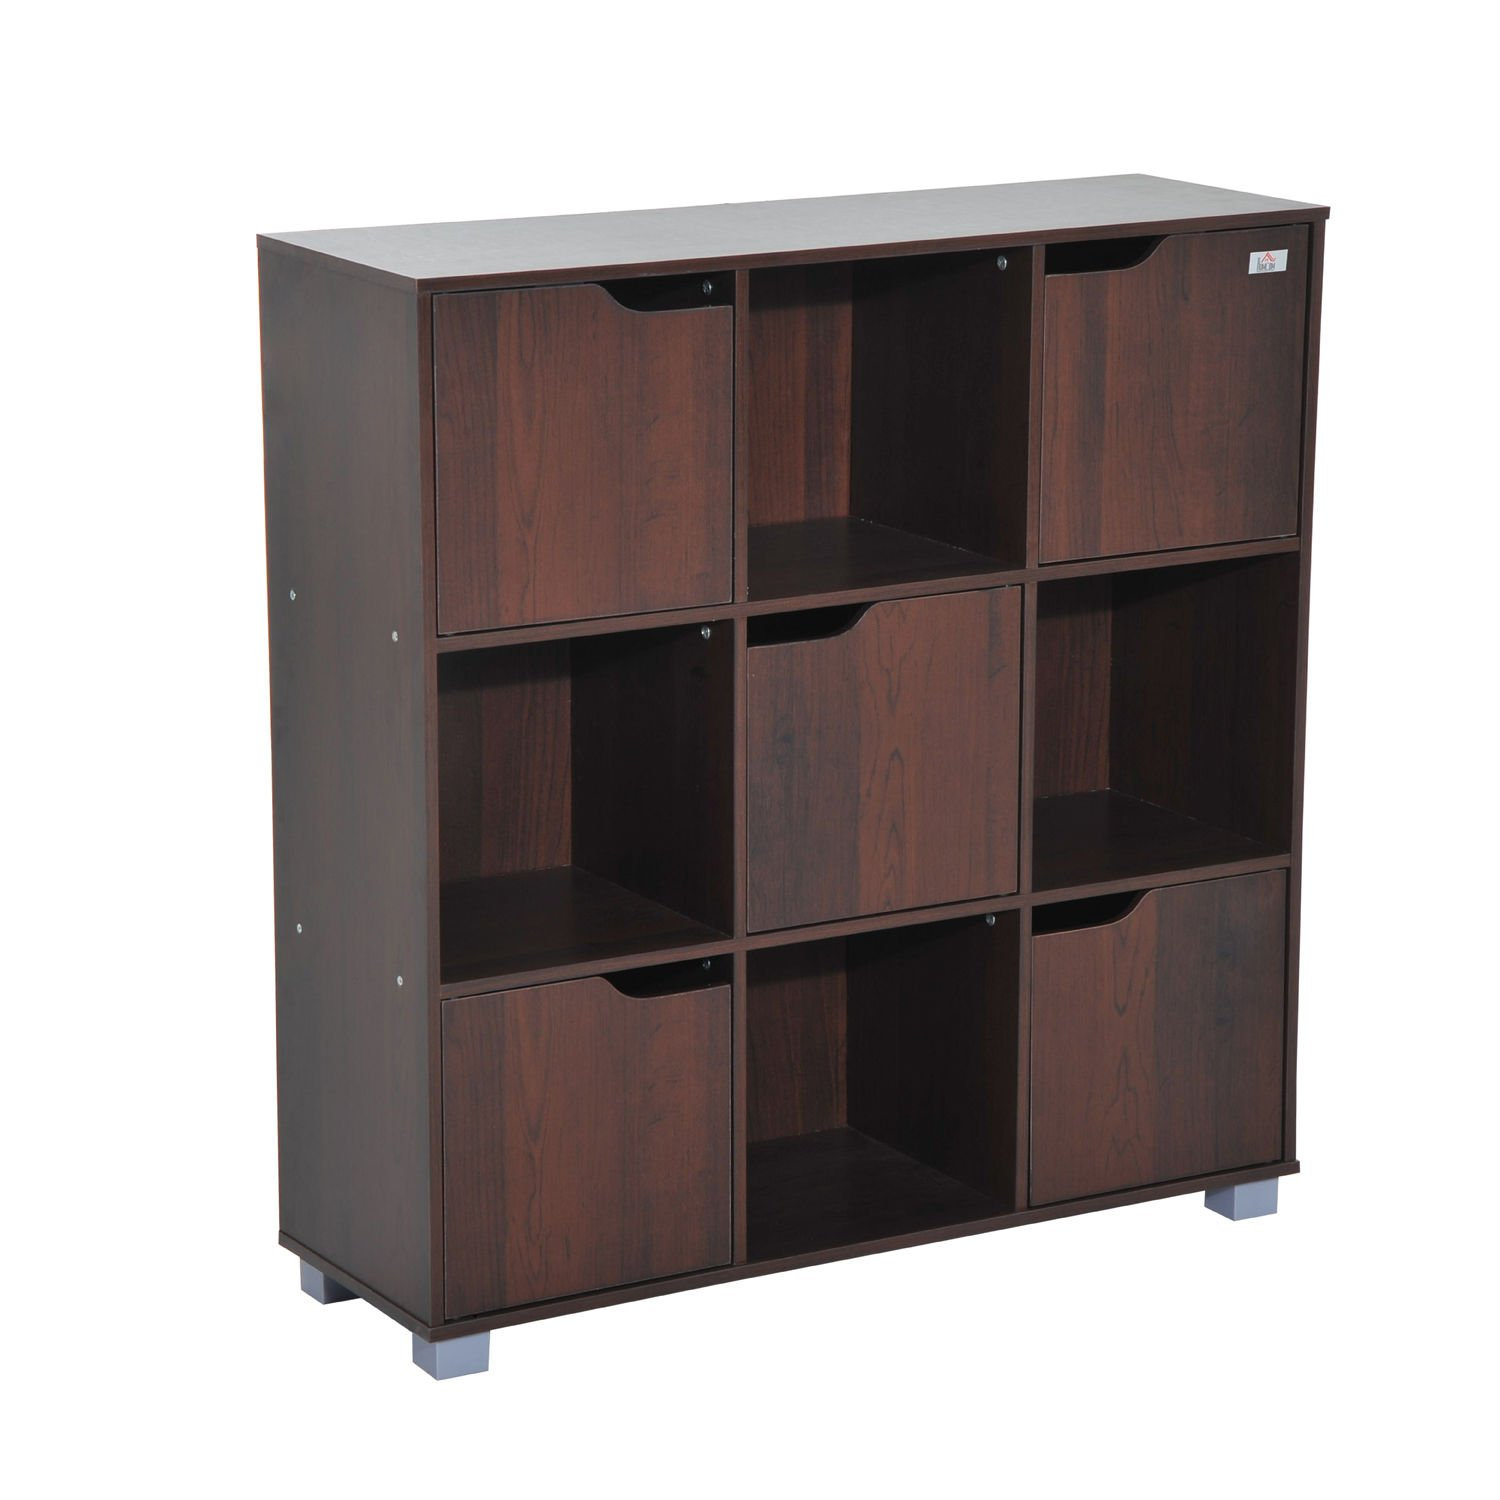 HOMCOM Cubic Bookcase Multi-Cells Bookshelf Indoor Office Home Storage Unit Cabinet (8 Cubes, Dark Coffee) Sold By MHSTAR